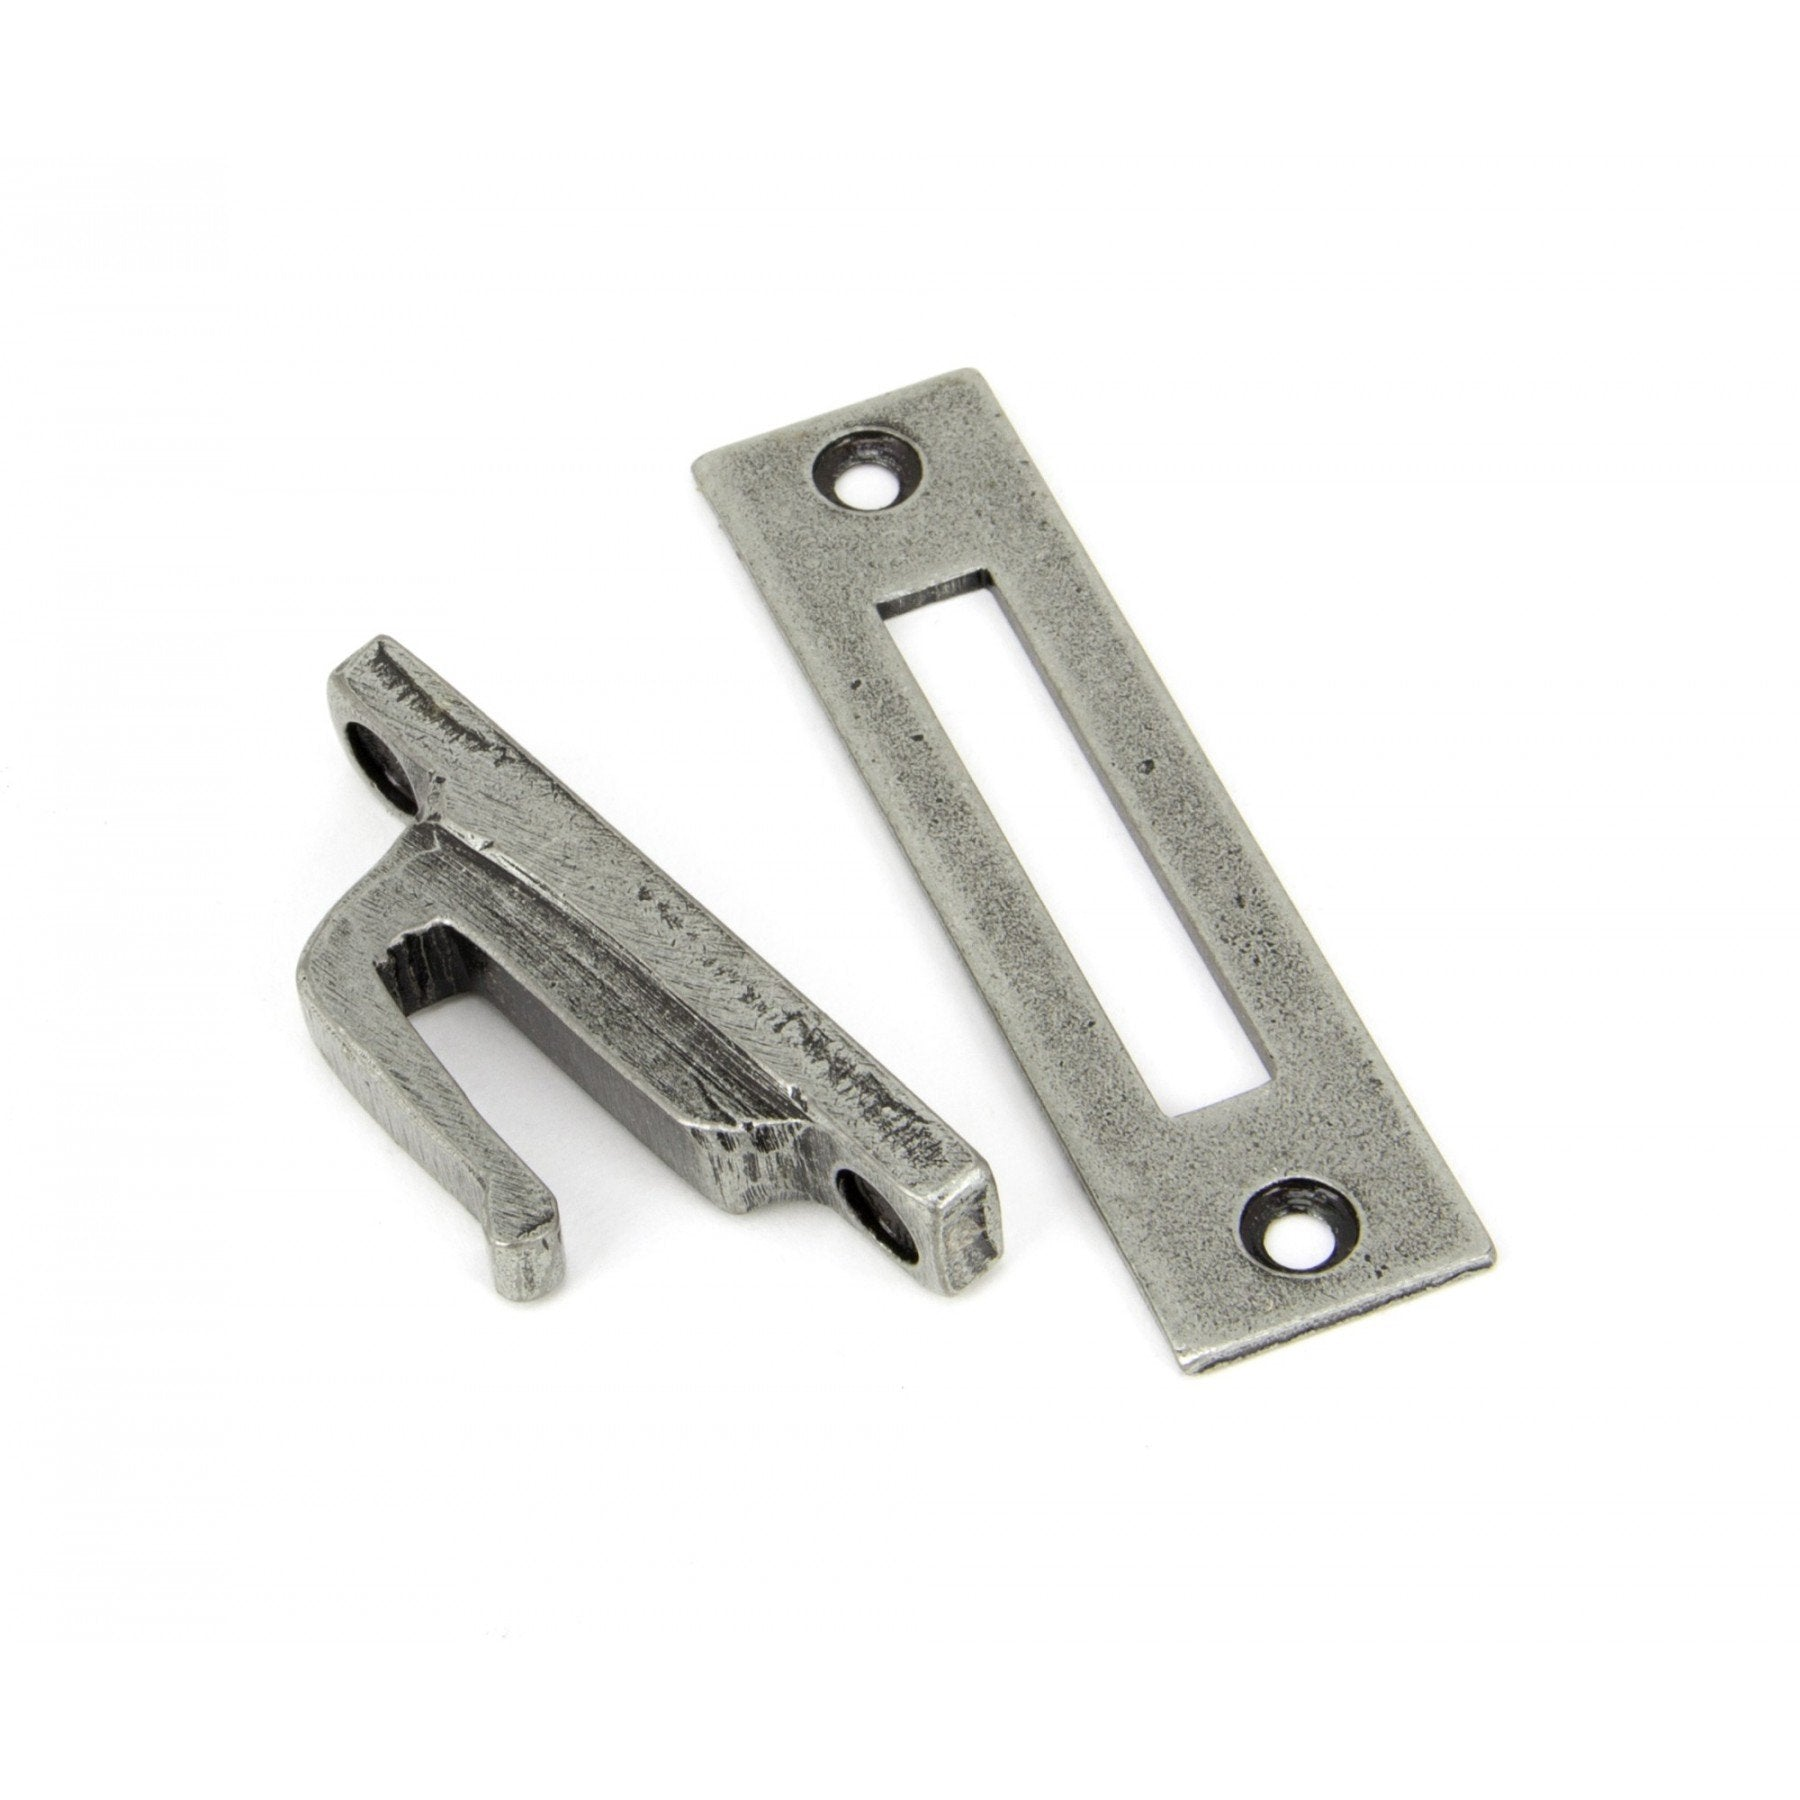 Pewter Locking Avon Fastener - No.42 Interiors